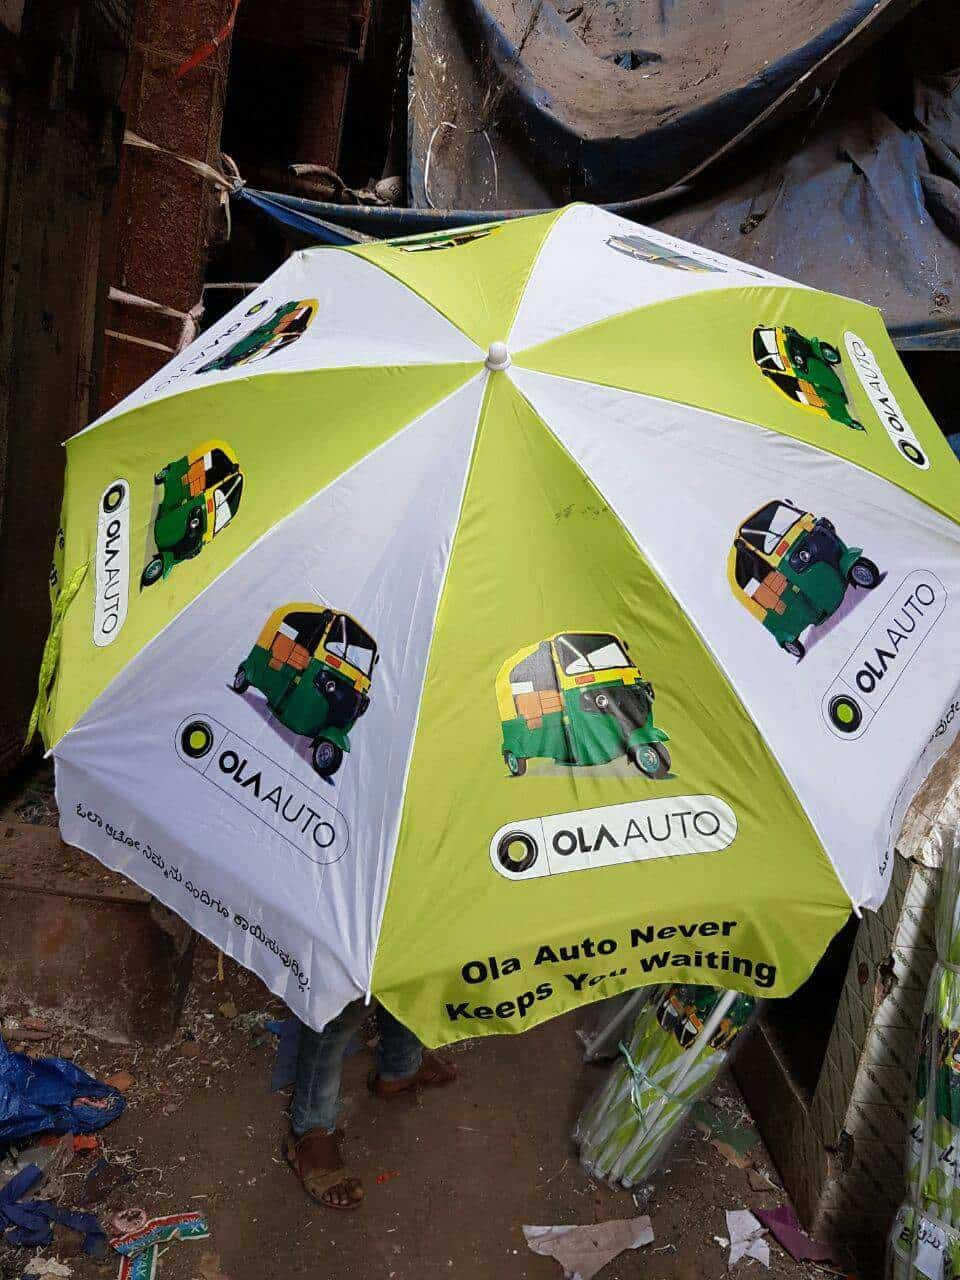 c8a02e0782a92 Prakash Umbrella Co, Bvk Iyengar Road - Umbrella Manufacturers in Bangalore  - Justdial